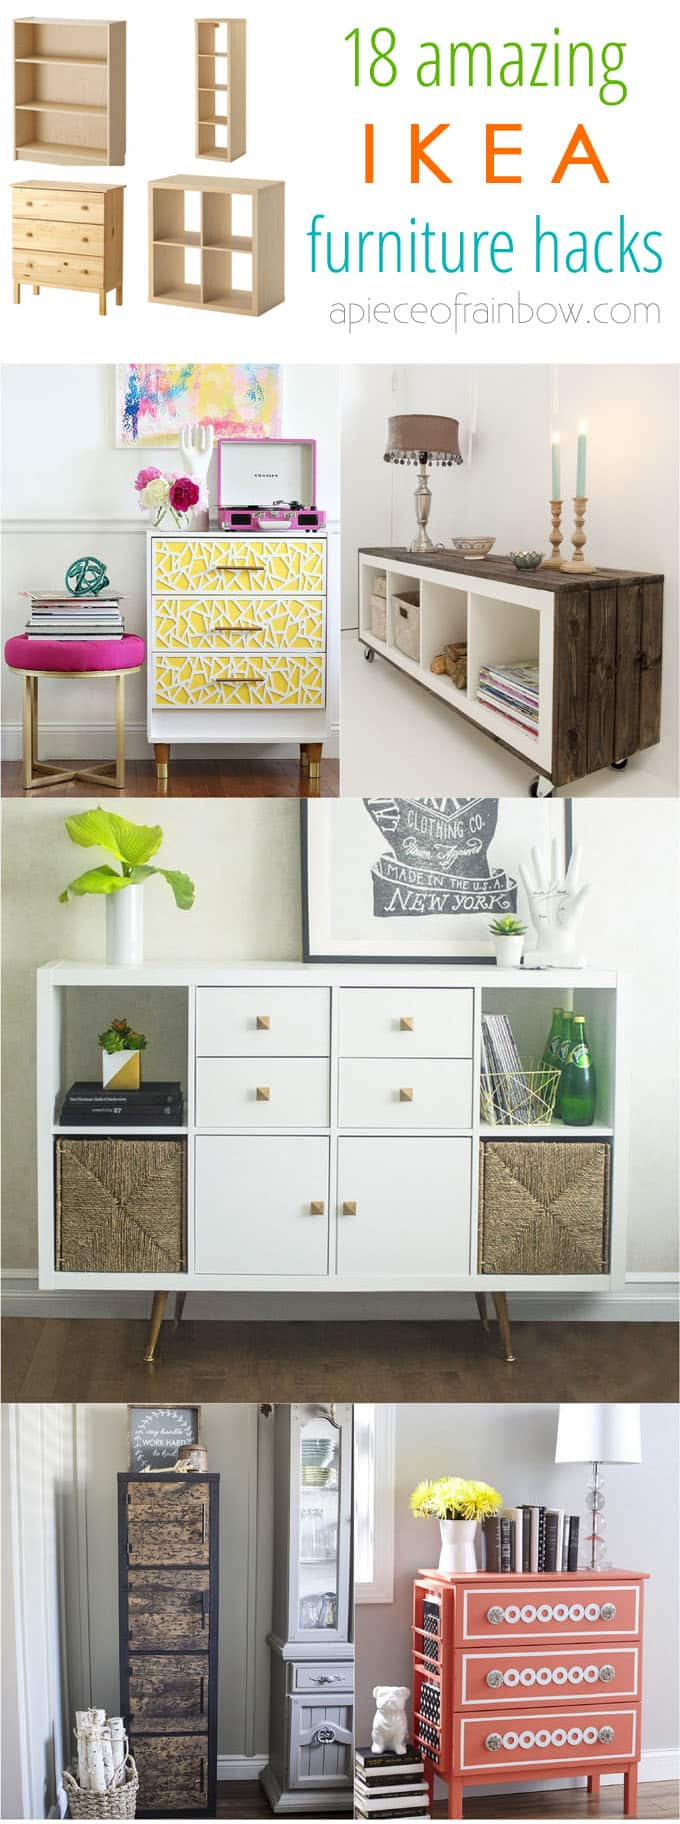 ikea furniture hacks. Ikea-hacks-custom-furniture-apieceofrainbow-13 Ikea Furniture Hacks